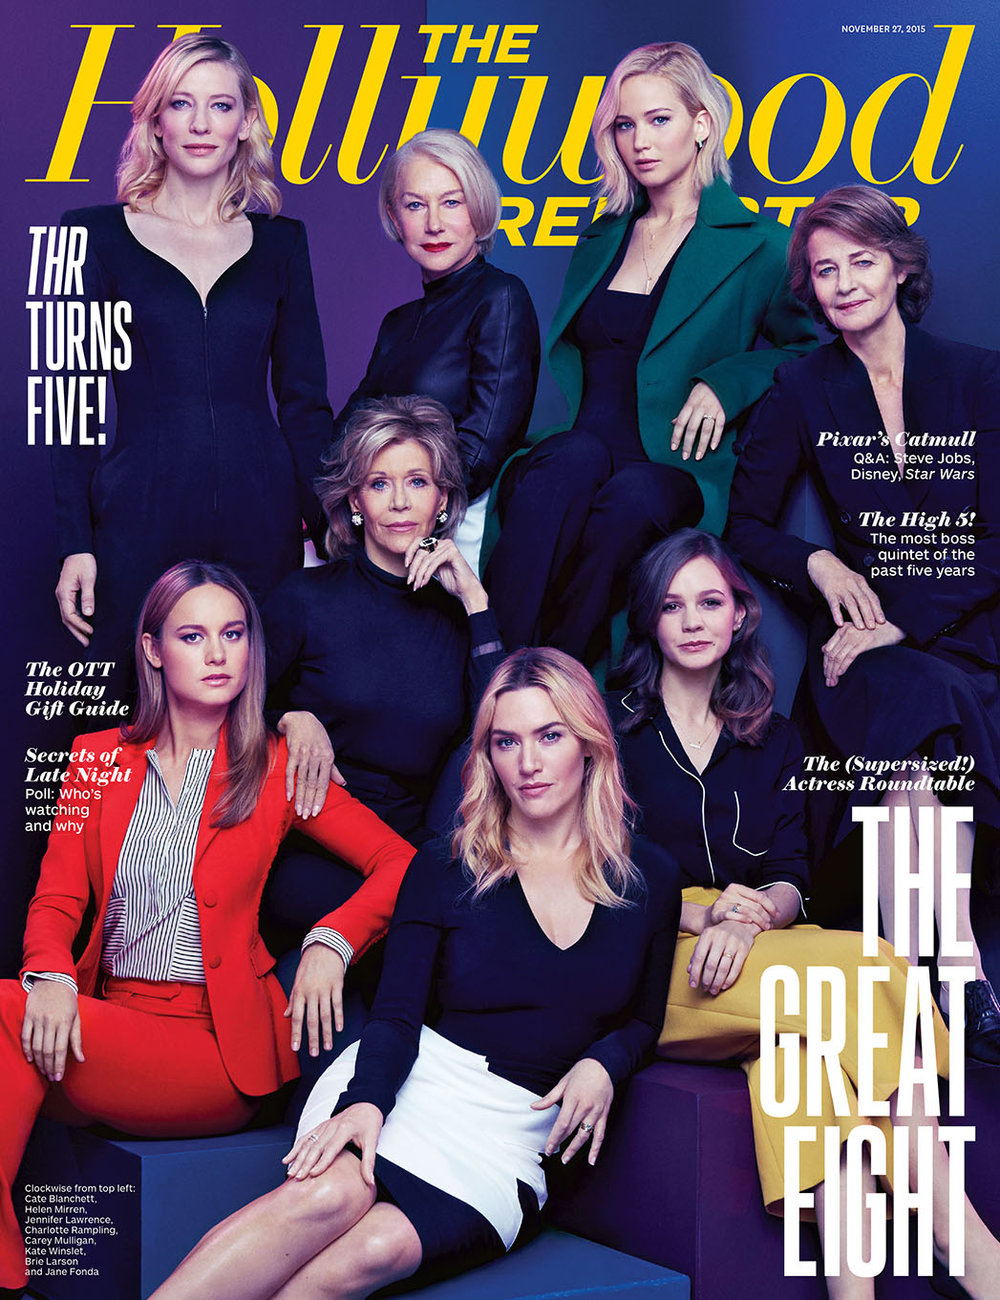 thr_issue_39_actress_rt_2015_cover1.jpg